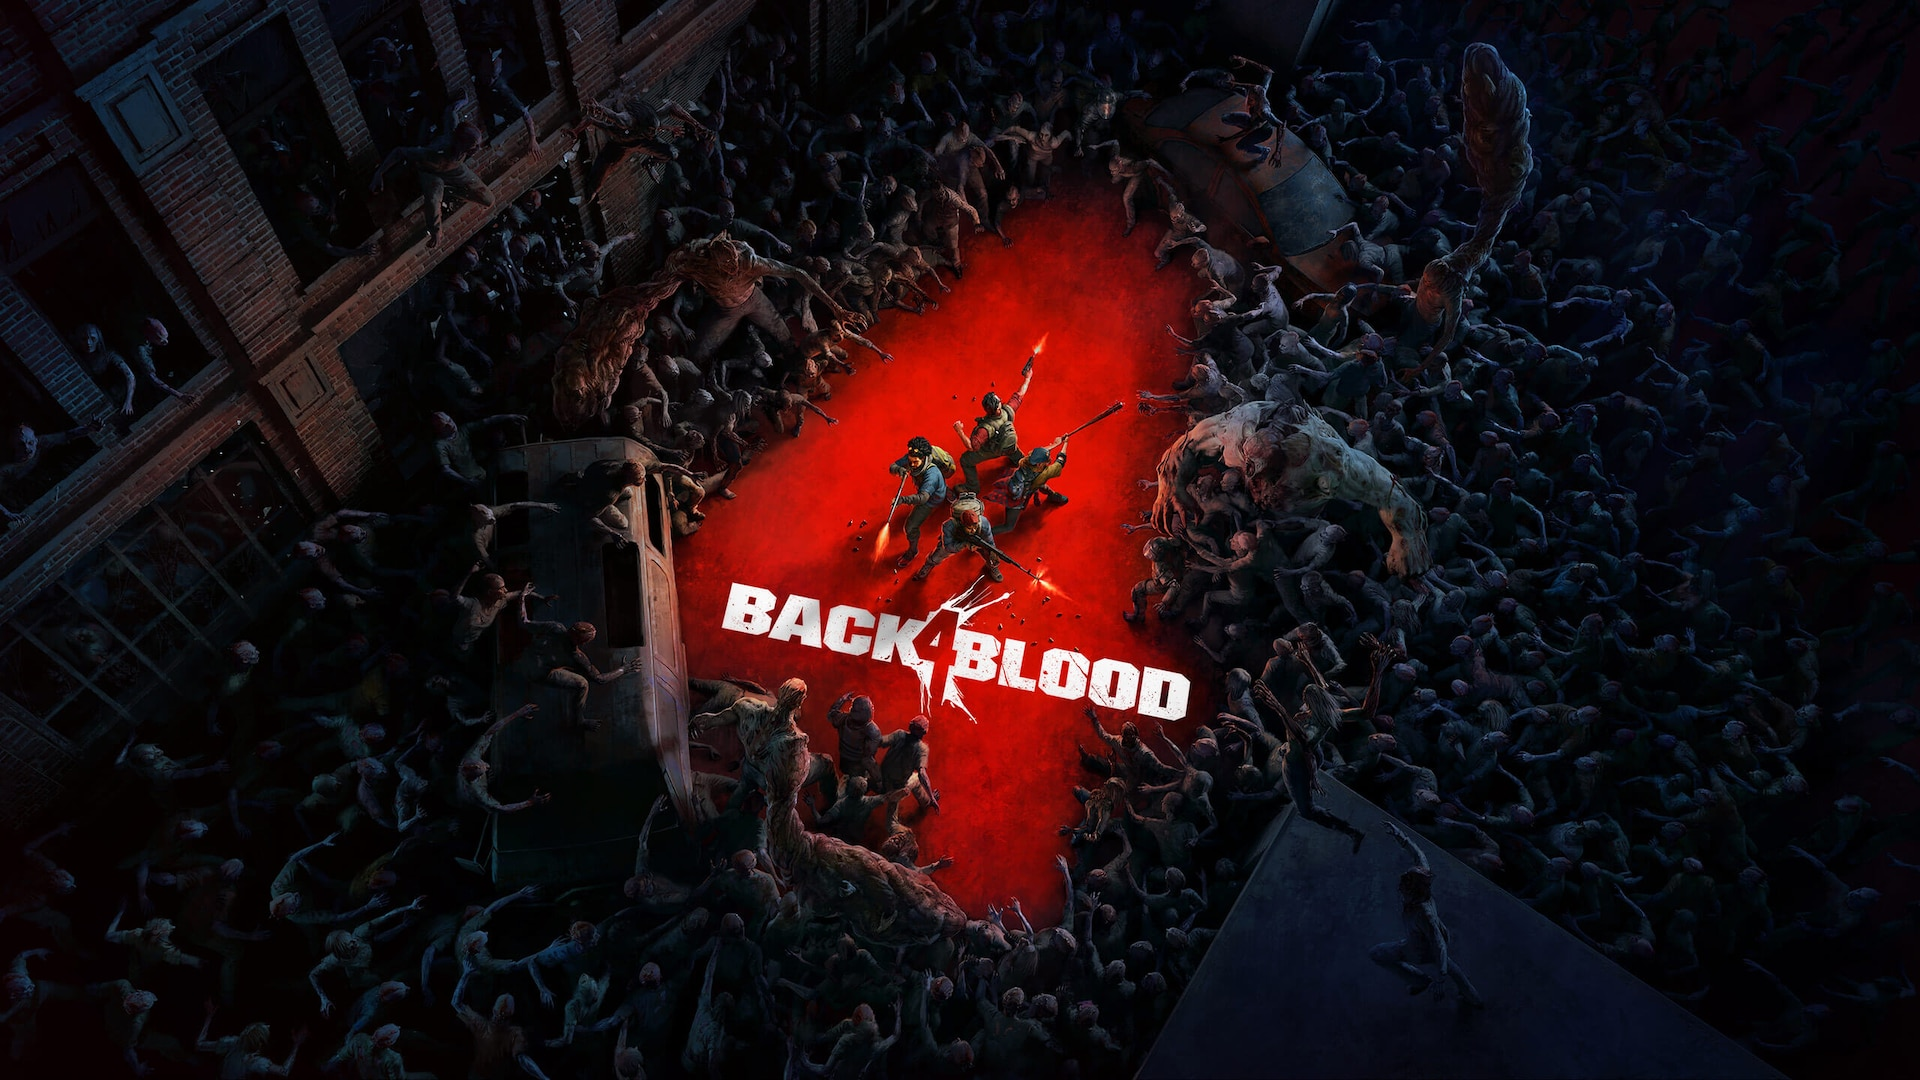 Back 4 Blood New Open Beta Trailer Showcases Co-Op and PvP Action